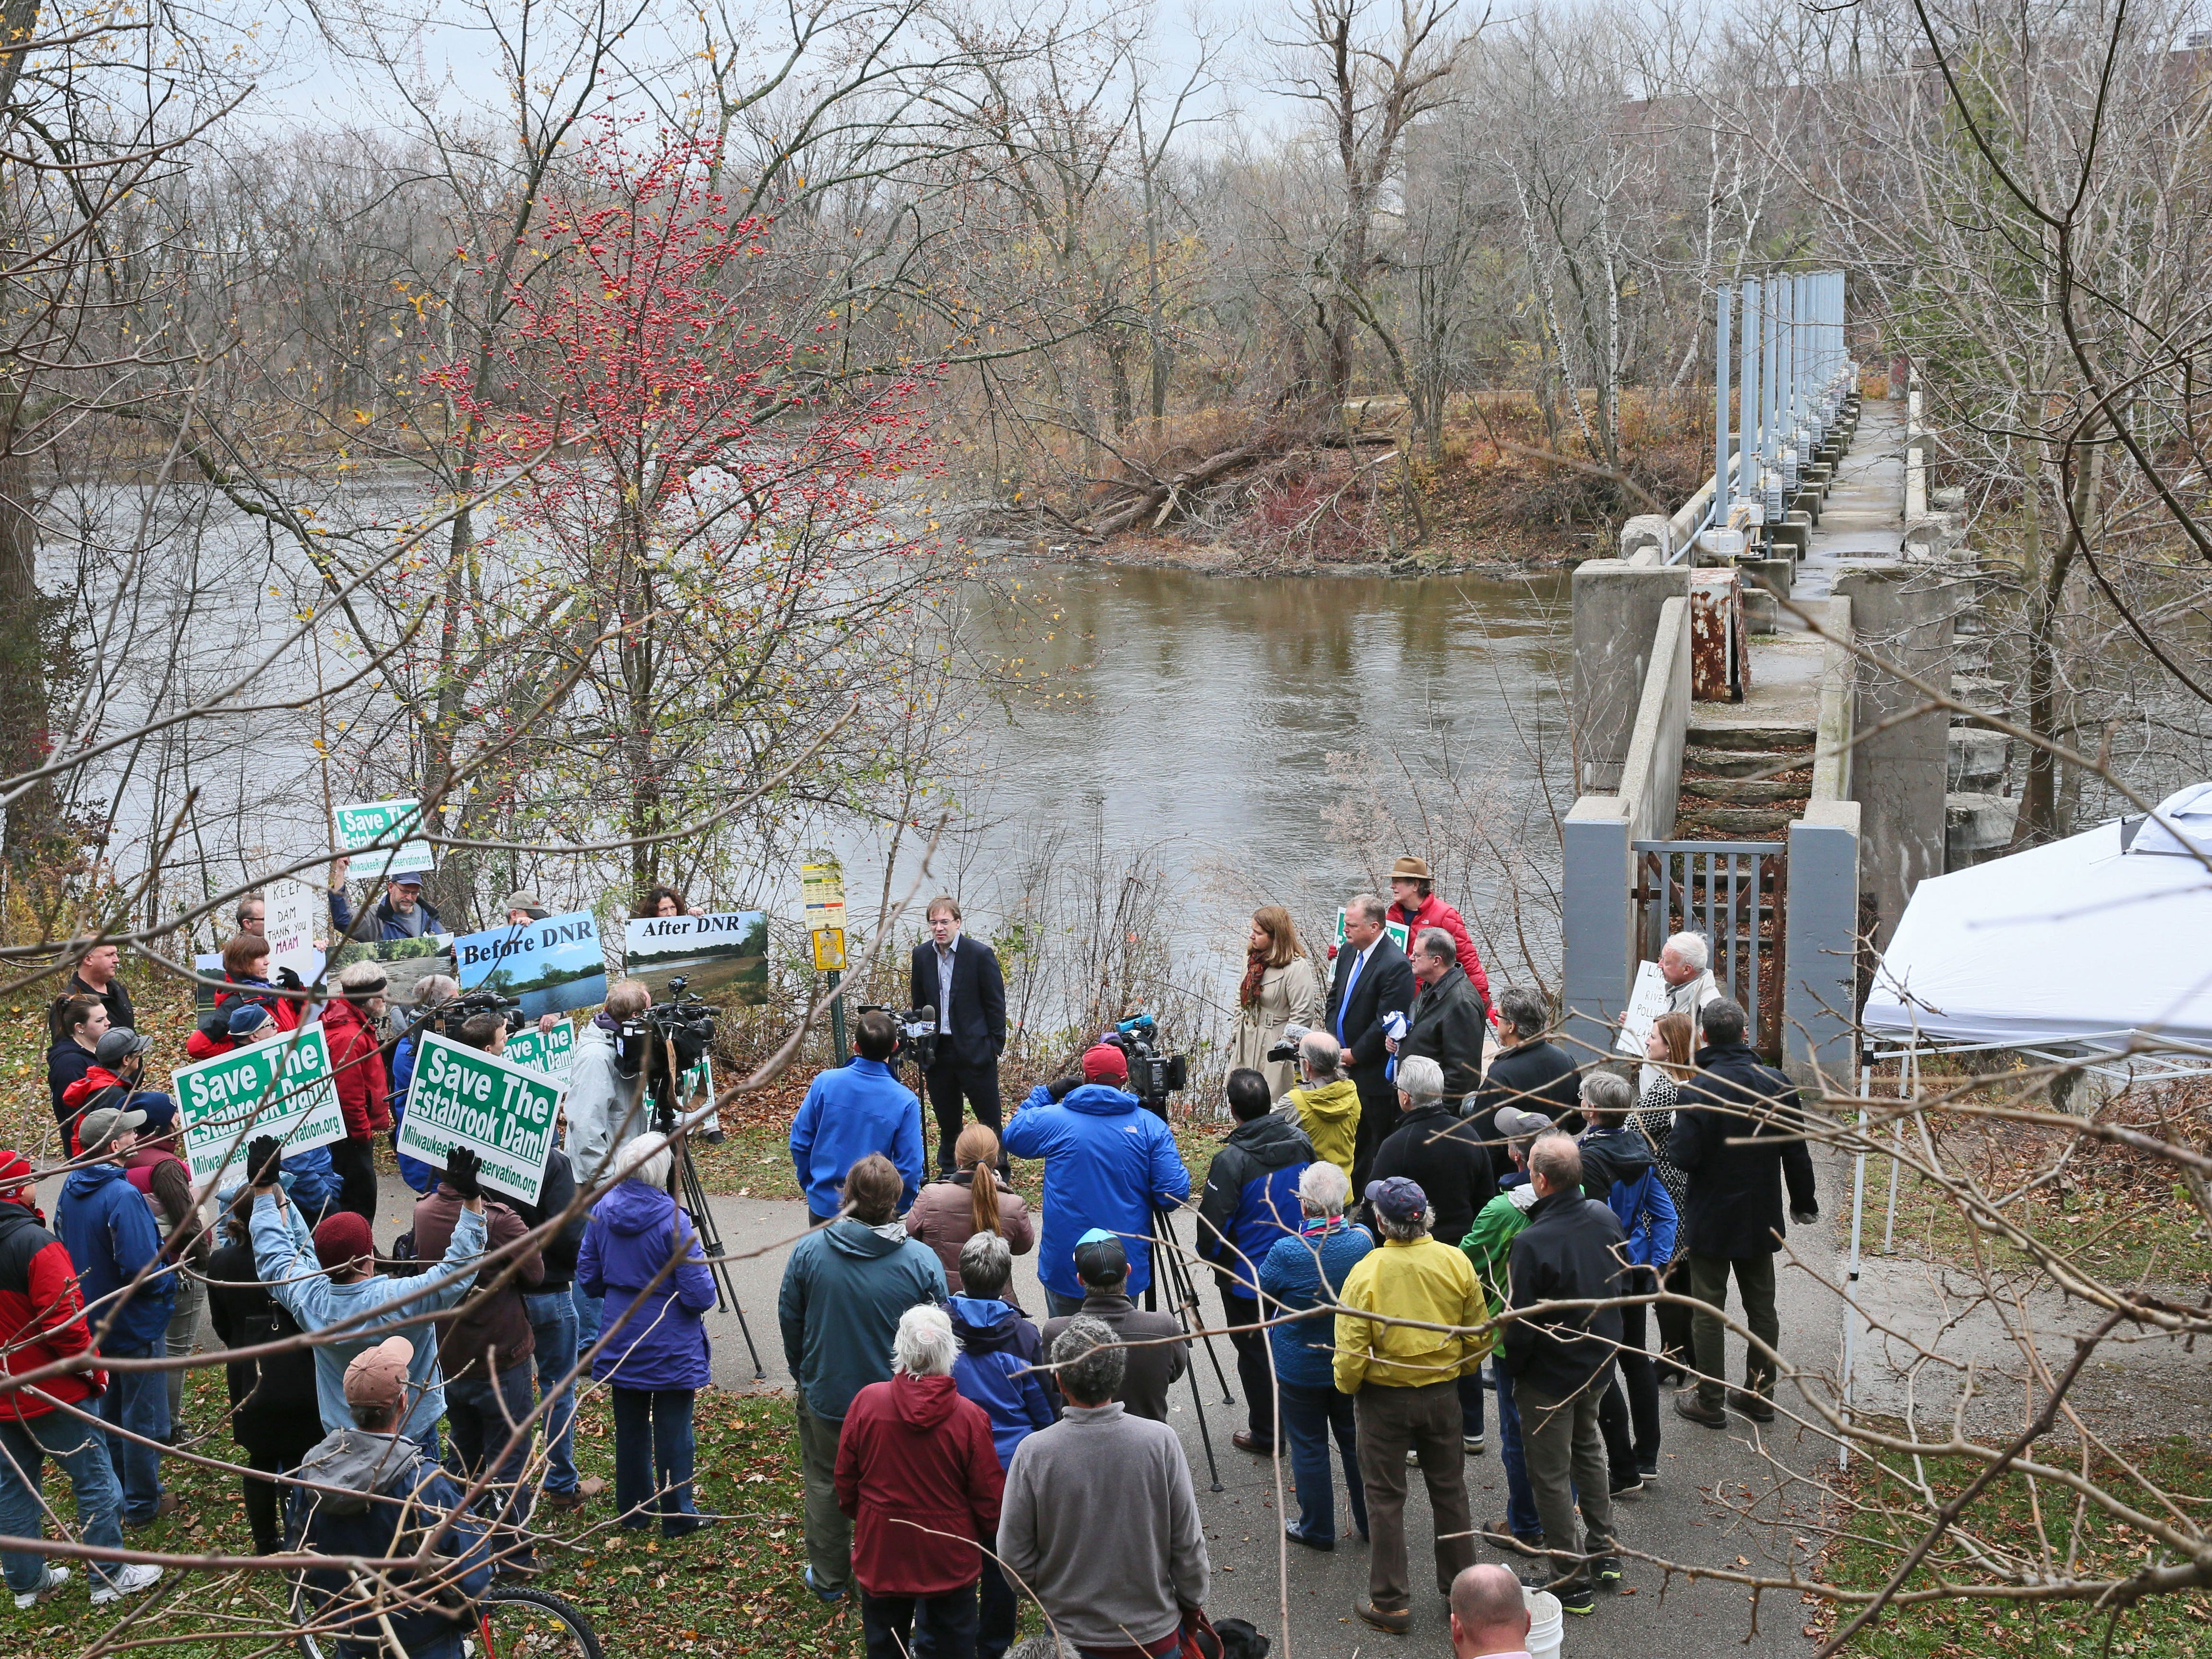 2015: Members of Milwaukee Riverkeepers and Milwaukee County Executive Chris Abele held a press event urging removal of the Estabrook Dam on the Milwaukee River just south of Hampton Ave.  A group of people from Milwaukee River Preservation Association who hold the opposite view stood to the side and held signs that urged the dam be saved.